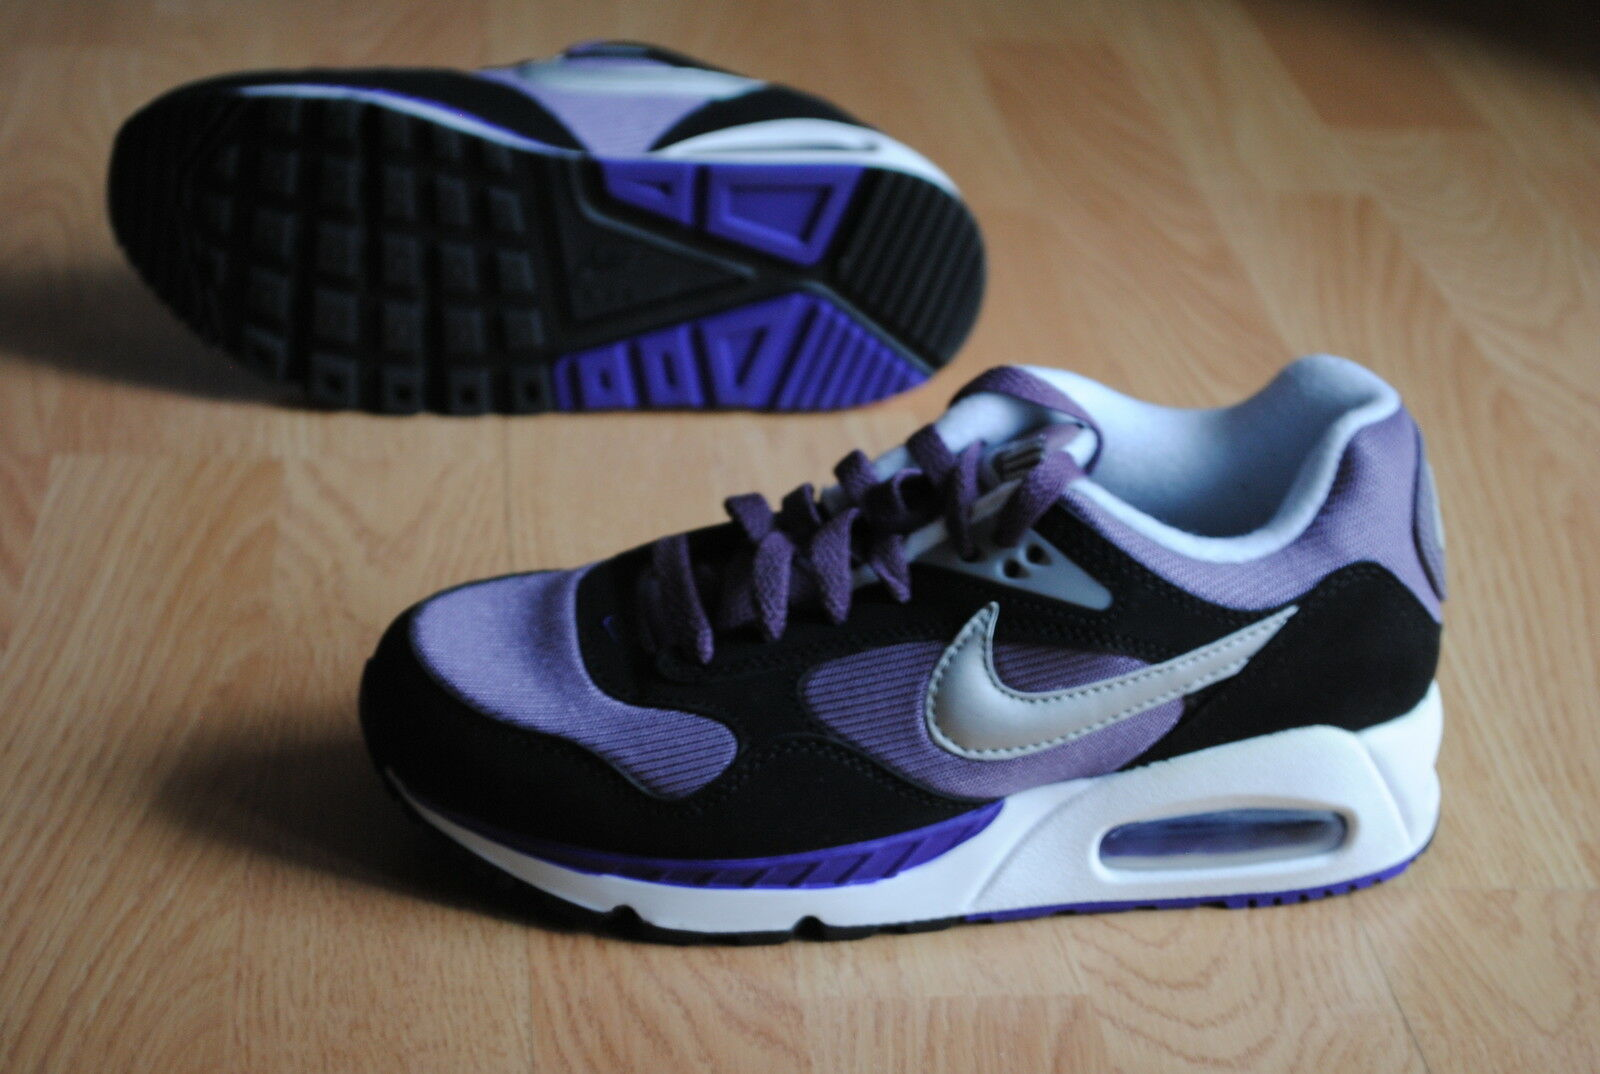 WMNS NIKE AIR MAX CORRELATE 38 38,5 Command CLASSIC GRATIS 1 SKYLINE 90